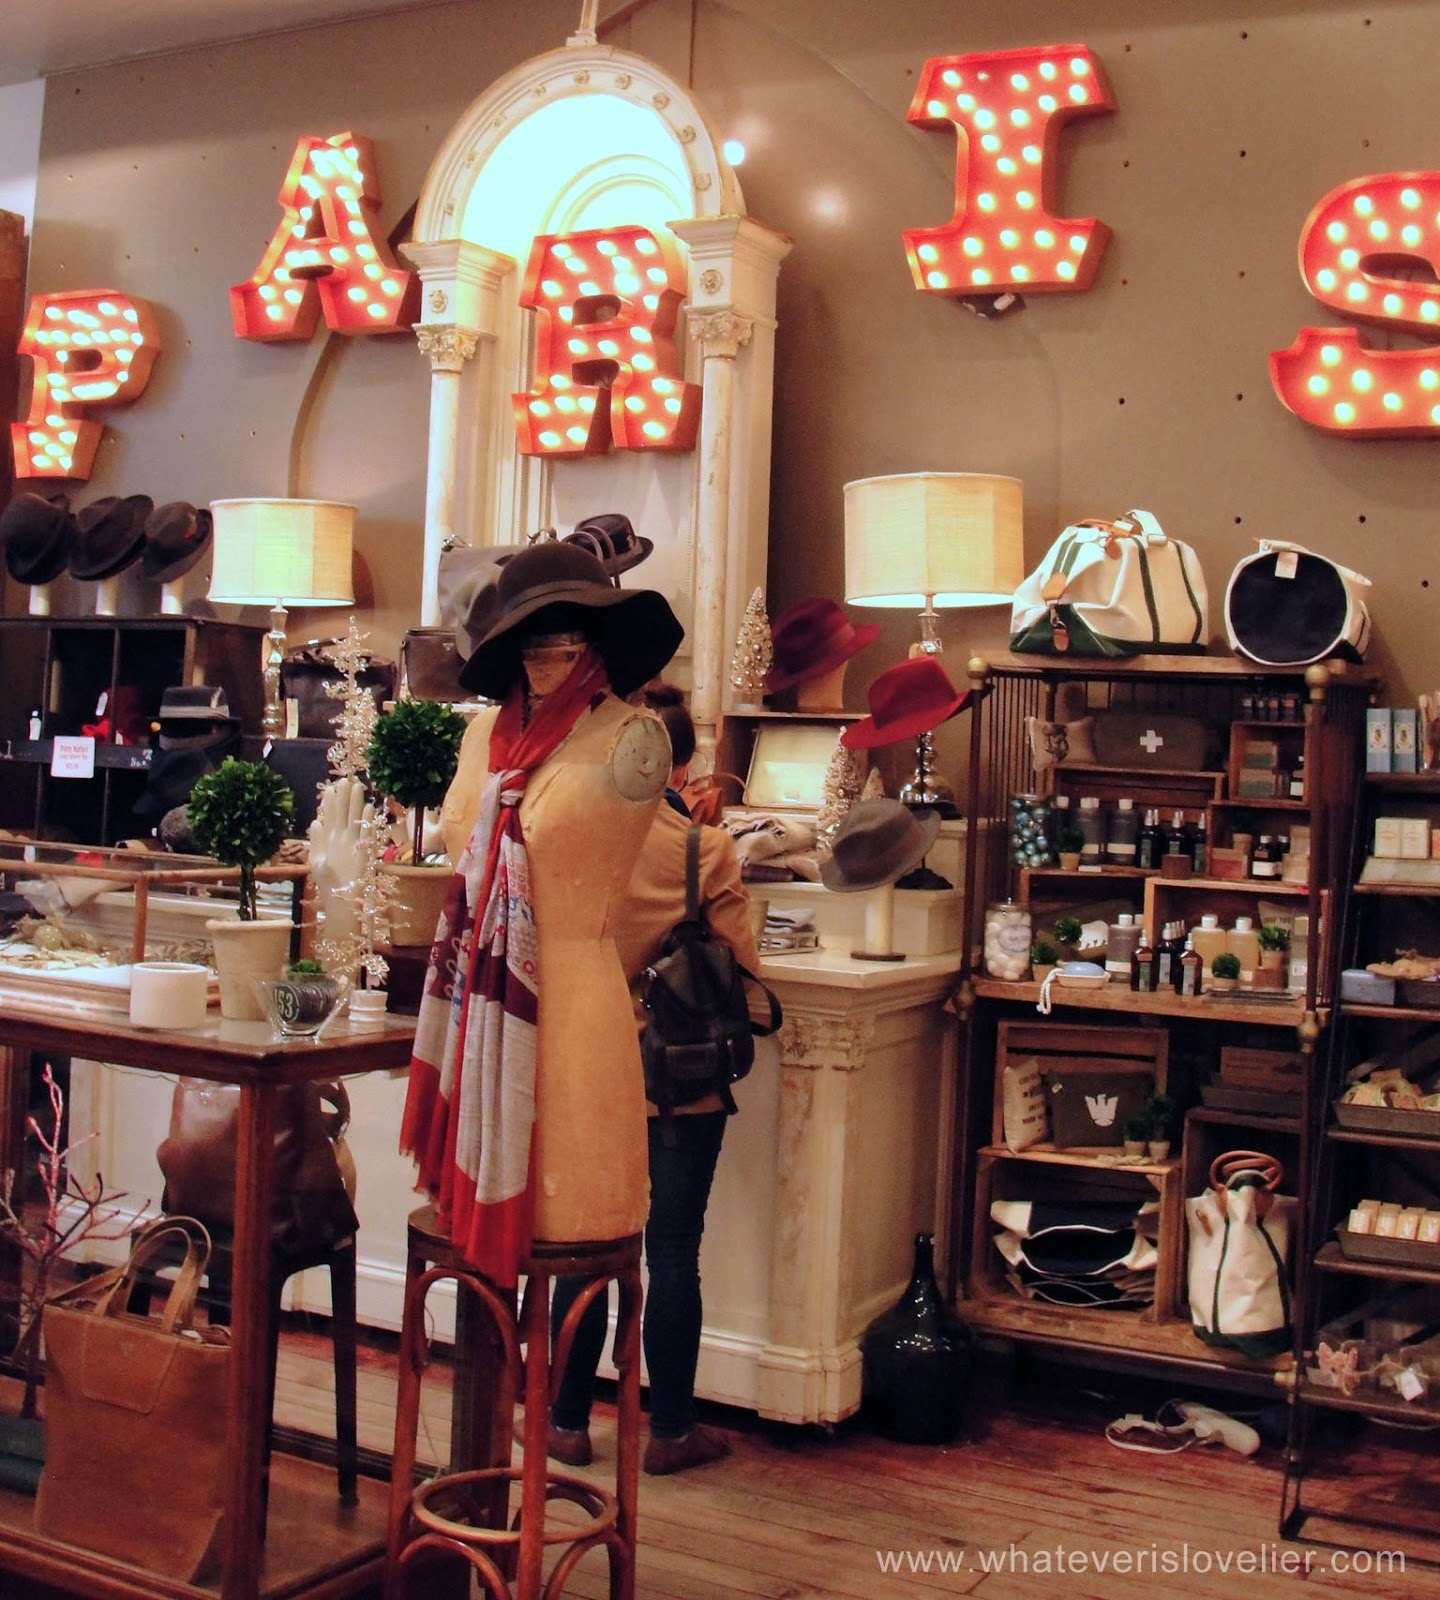 Travel Tuesday: The Paris Market and Brocante, Savannah